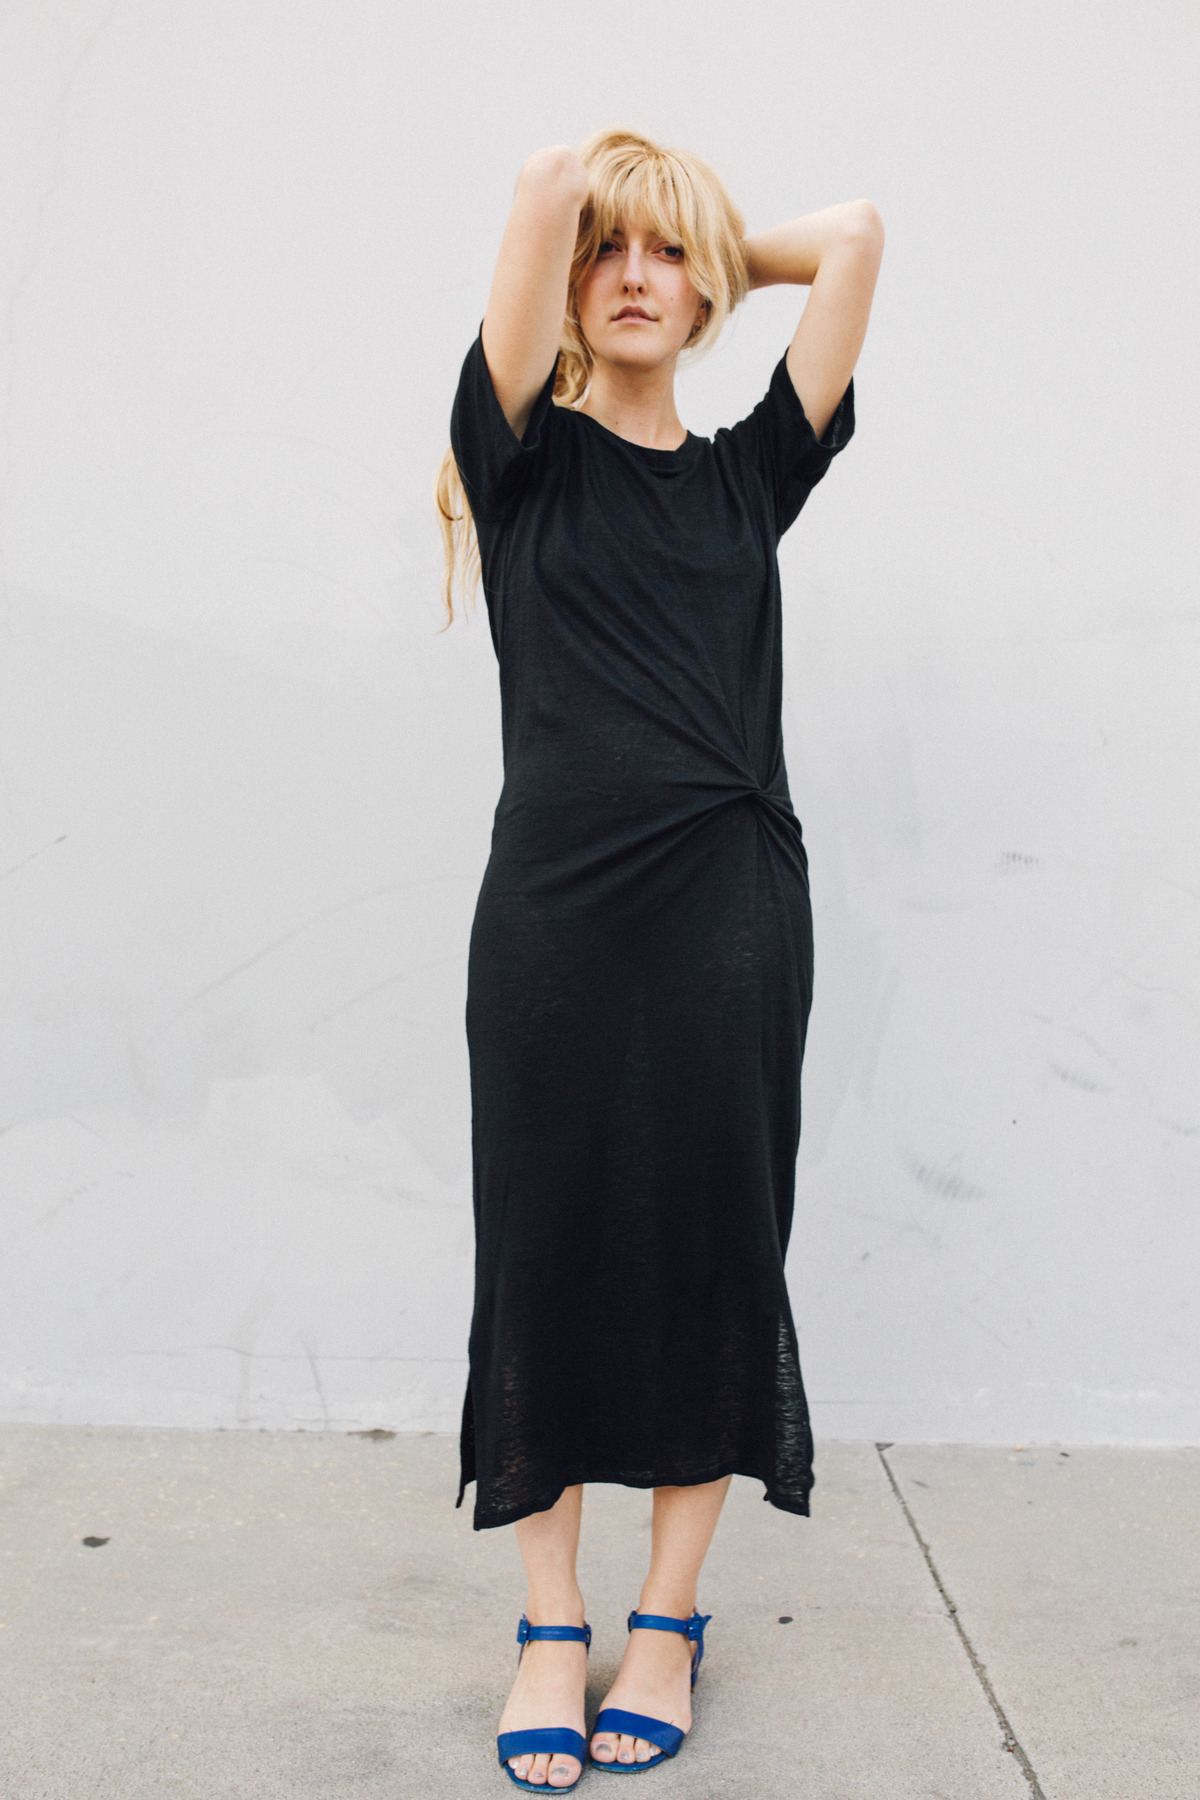 Black dress meaning - Objects Without Meaning